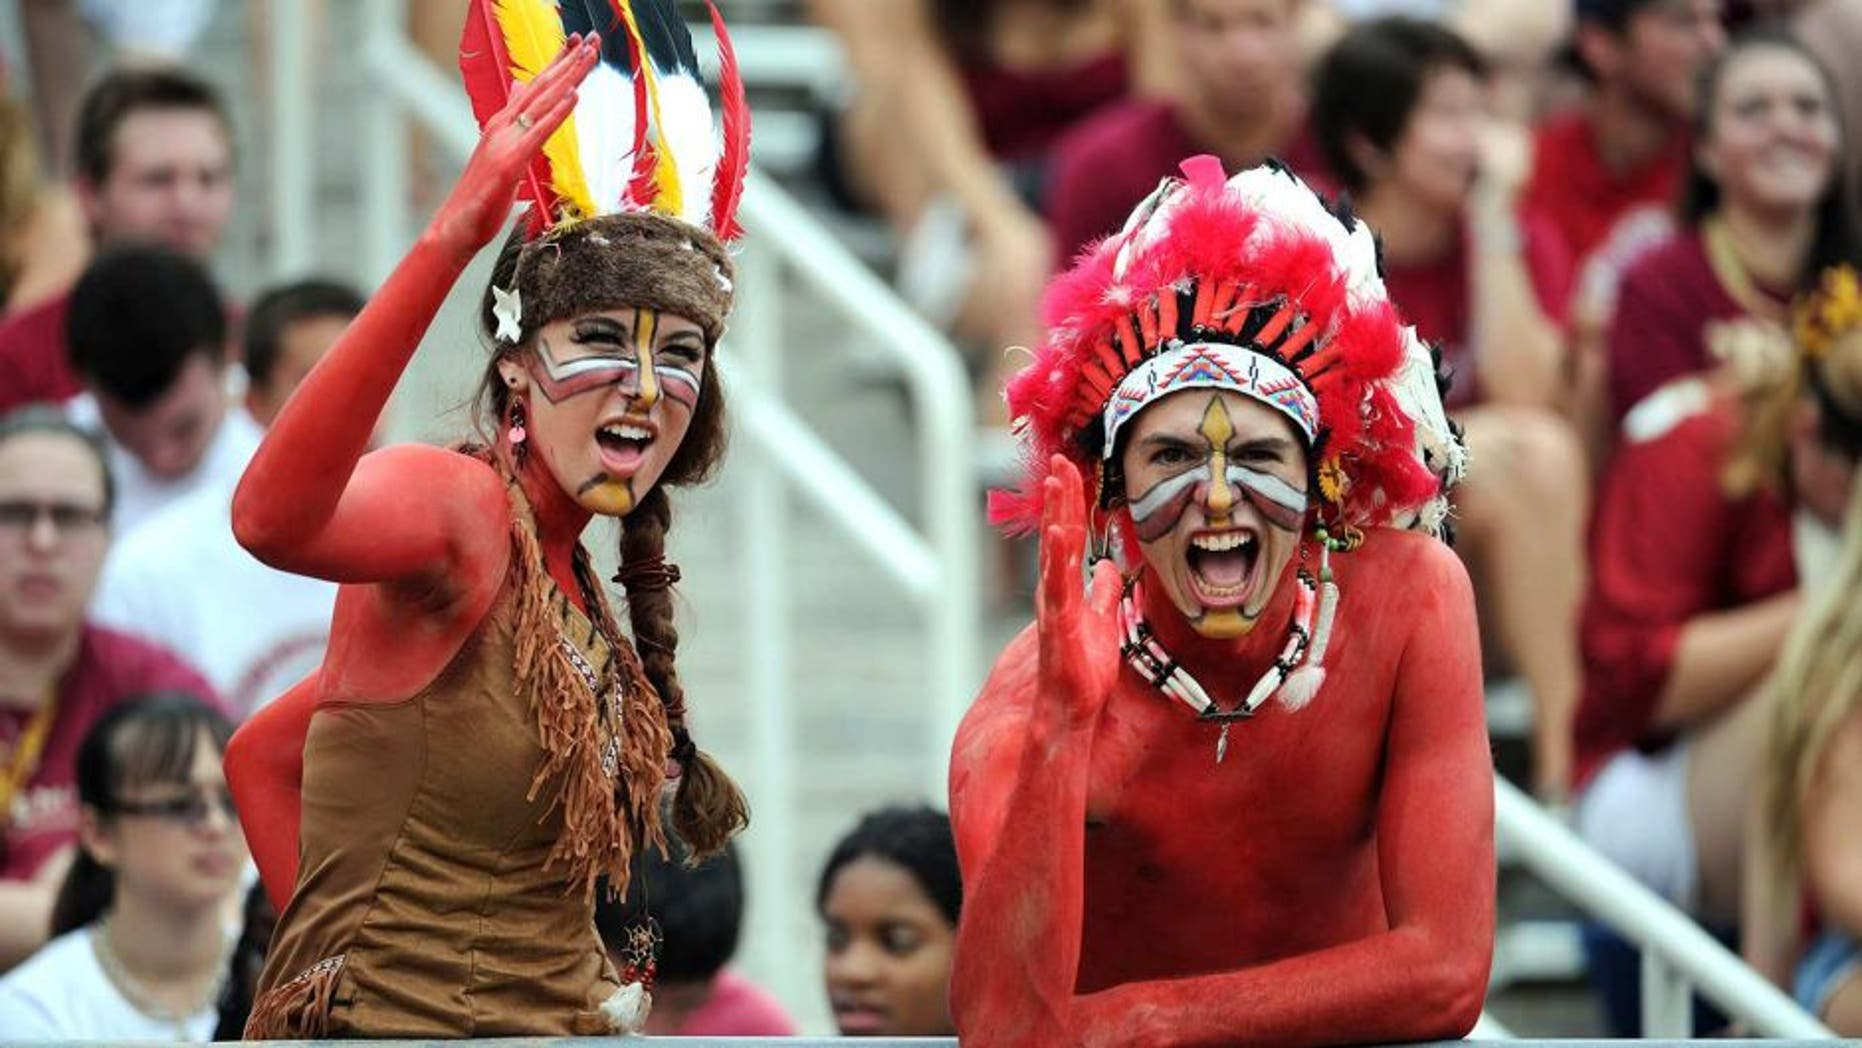 Sept 8, 2012; Tallahassee, Florida, USA; Florida State Seminoles fans cheer during the game against the Savannah State Tigers at Doak Campbell Stadium. Mandatory Credit: Melina Vastola-USA TODAY Sports